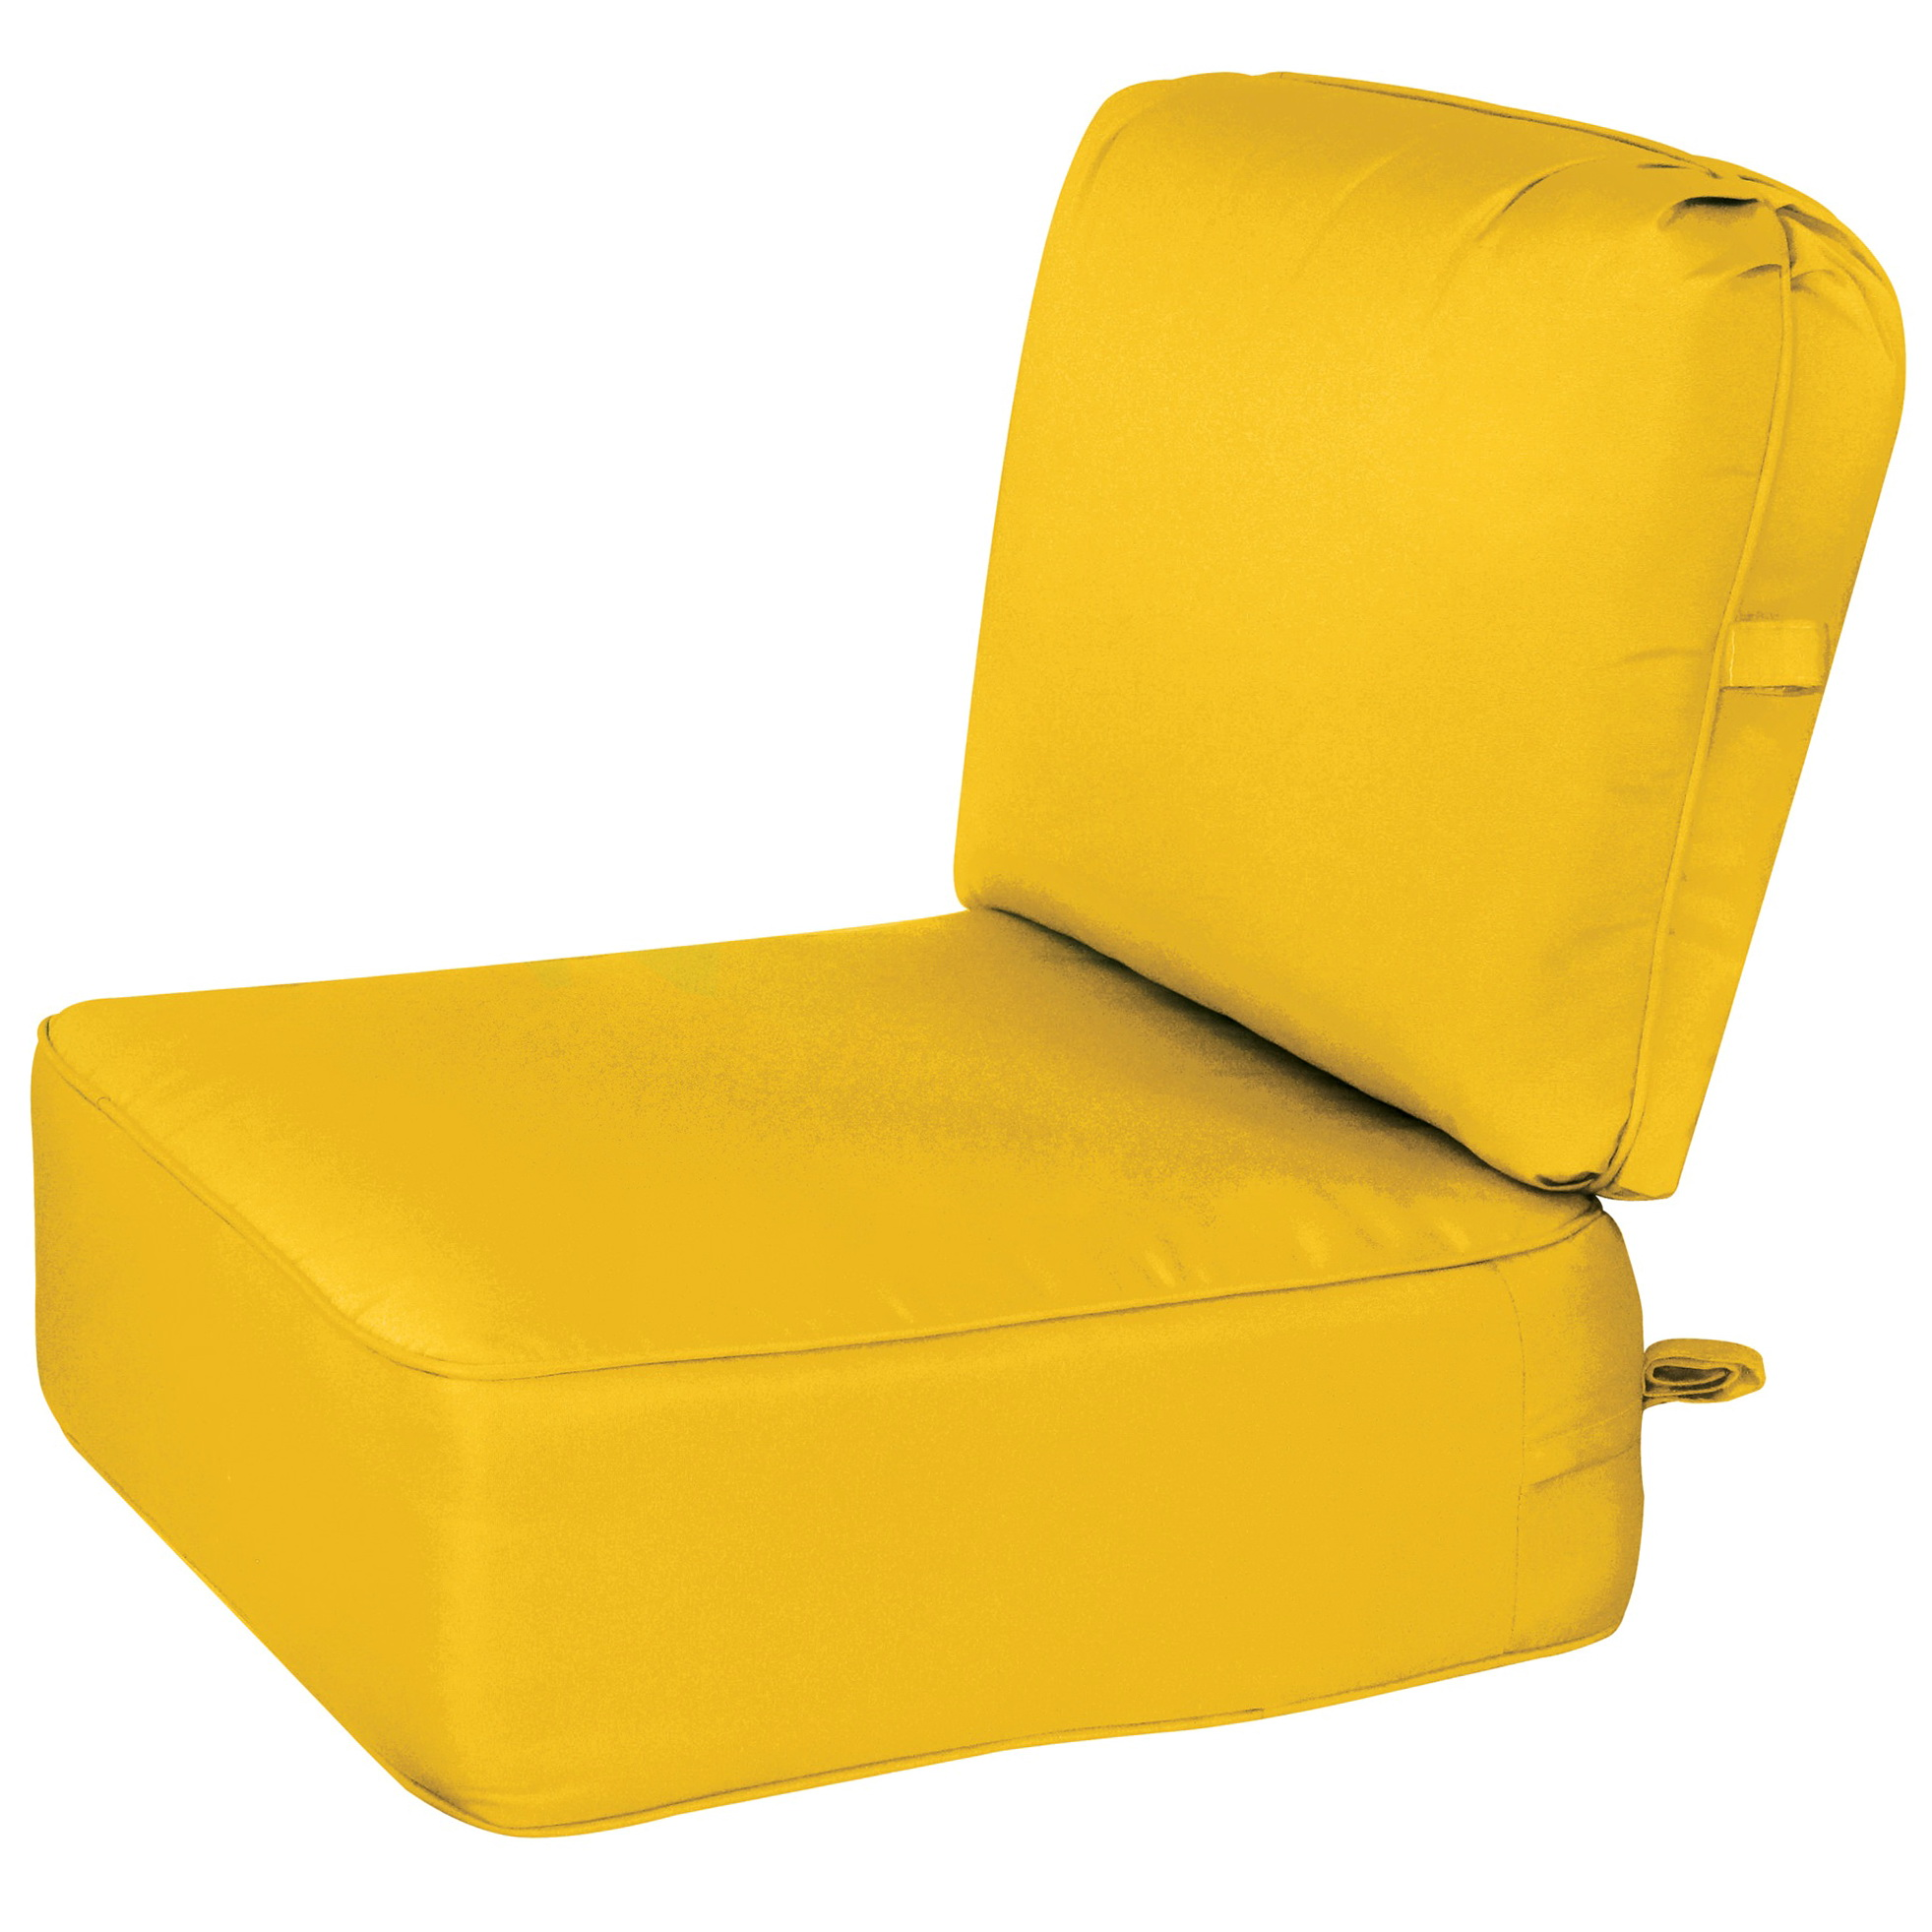 Deep seat patio cushions sale for Patio furniture cushions